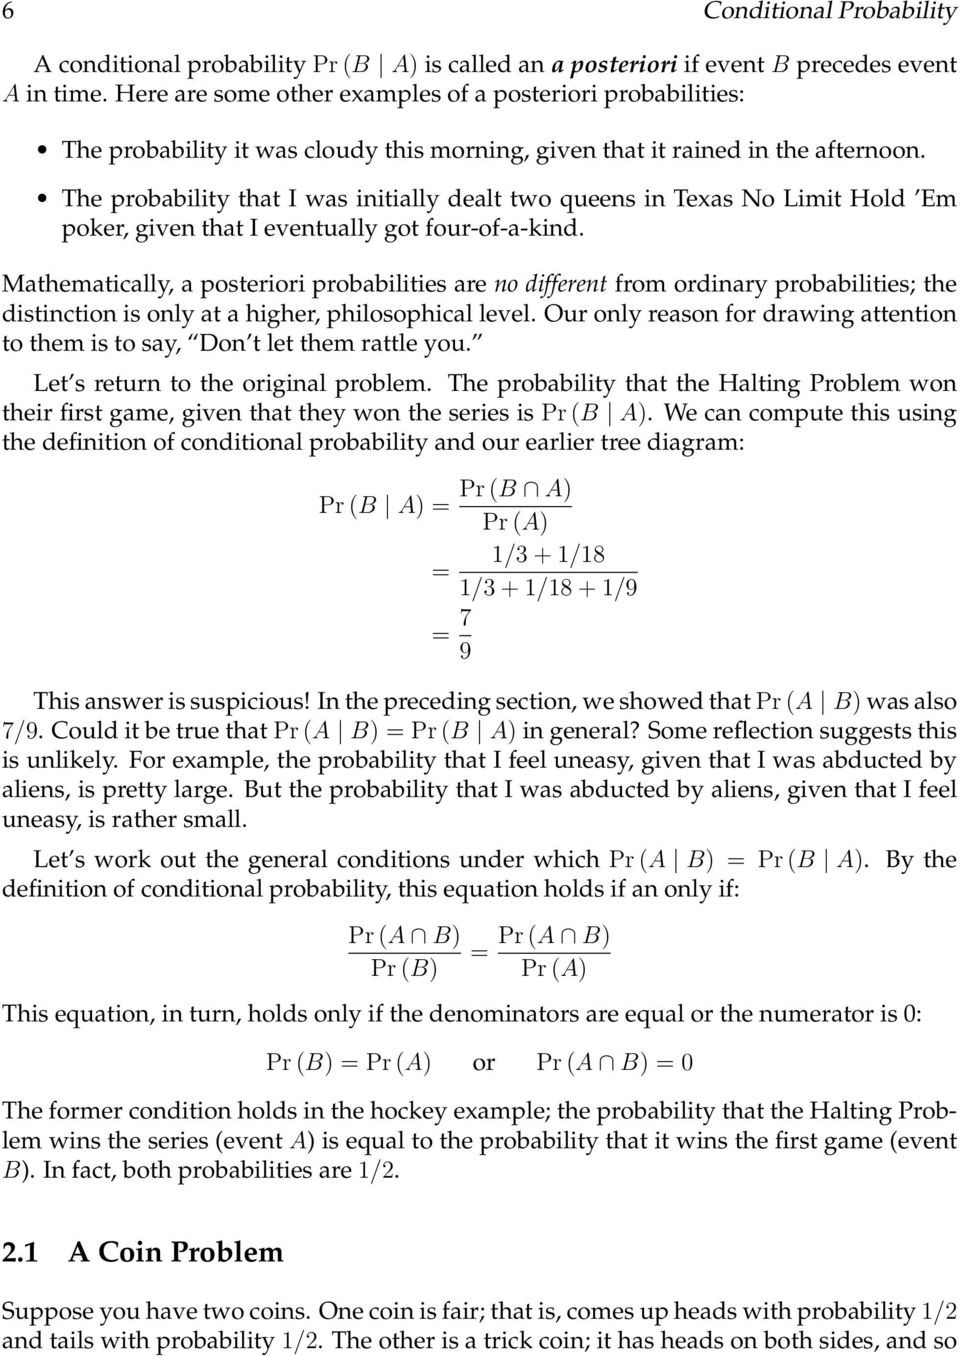 Probability Worksheets High School Pdf Conditional Probability Pdf Free Download